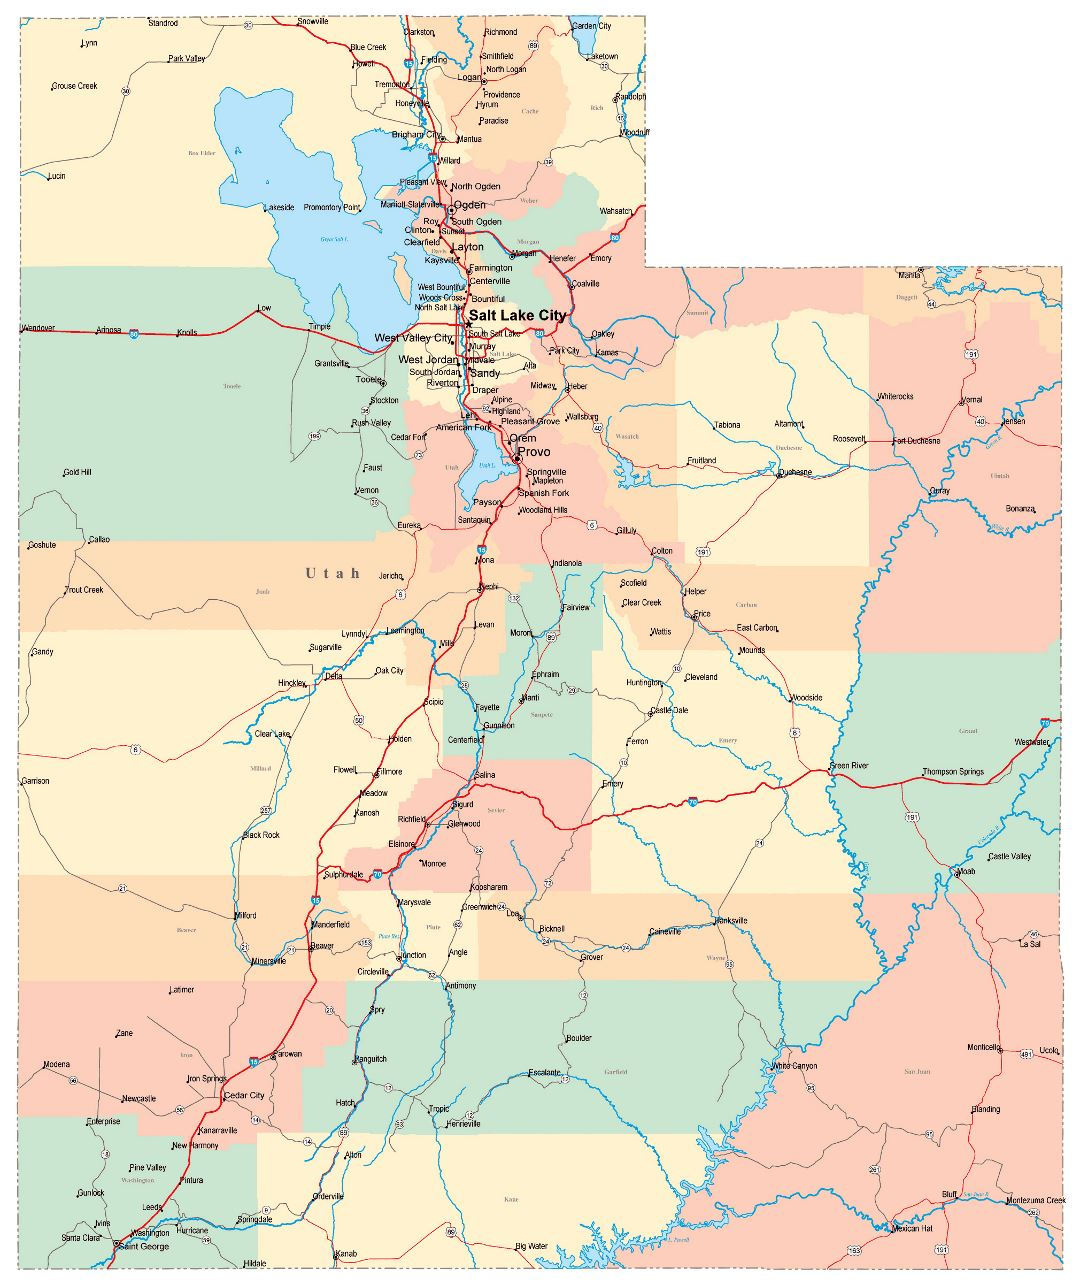 Large administrative map of Utah state with roads, highways and cities